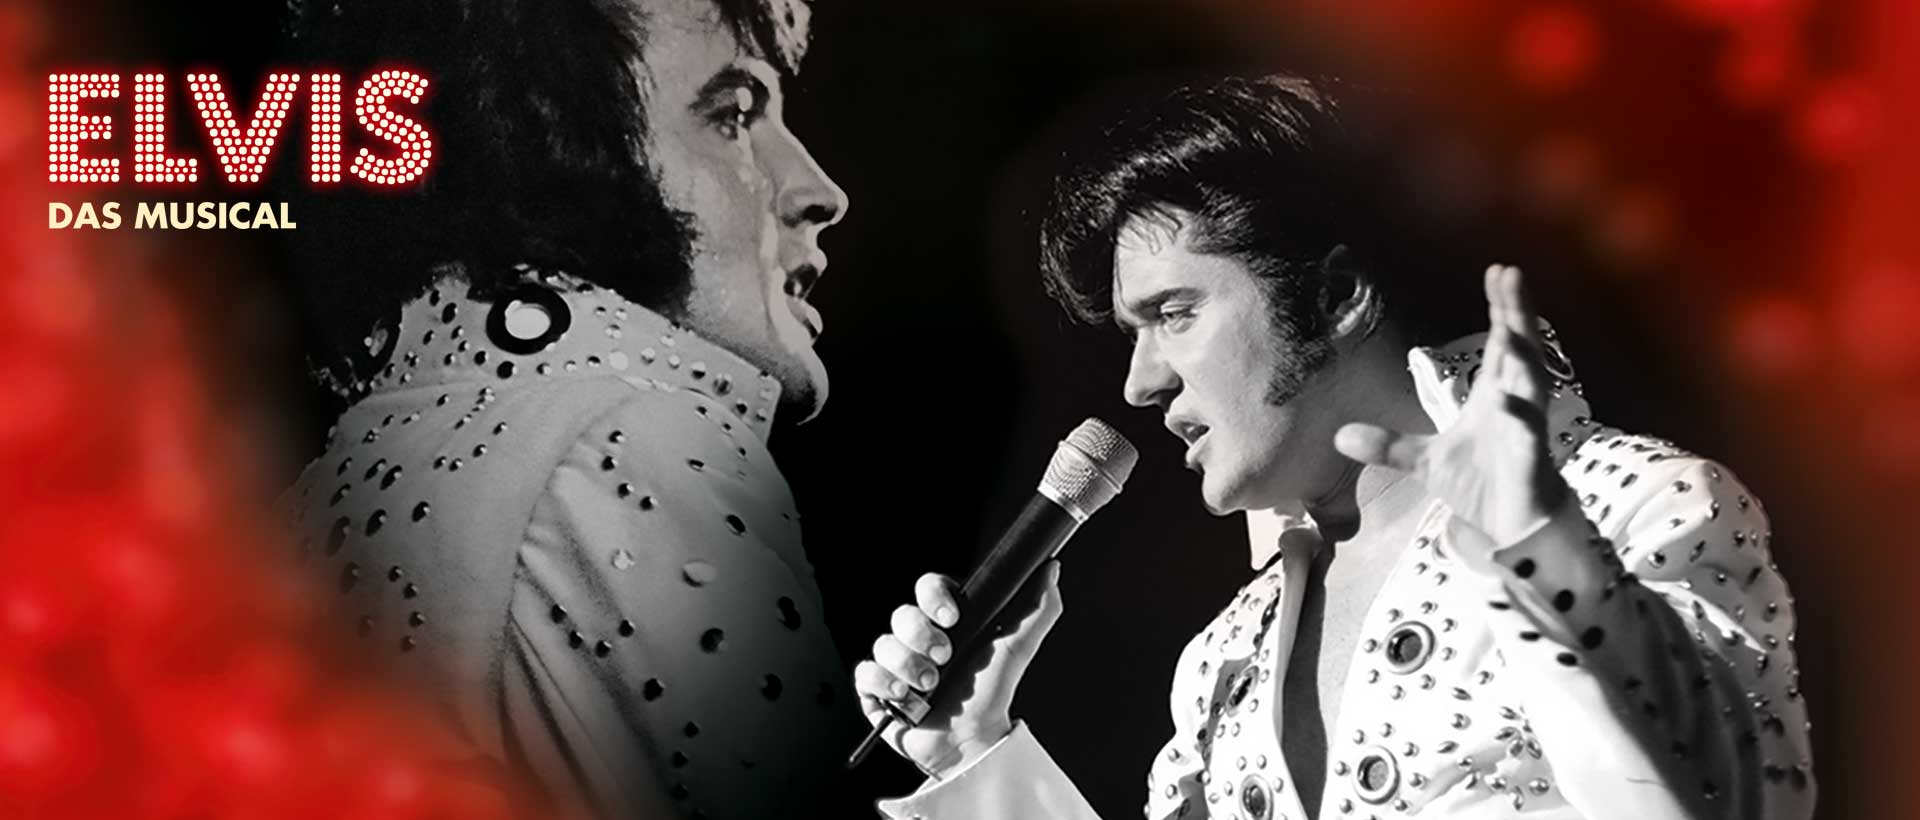 ELVIS - Das Musical - 20.08.. - 12.09.2021